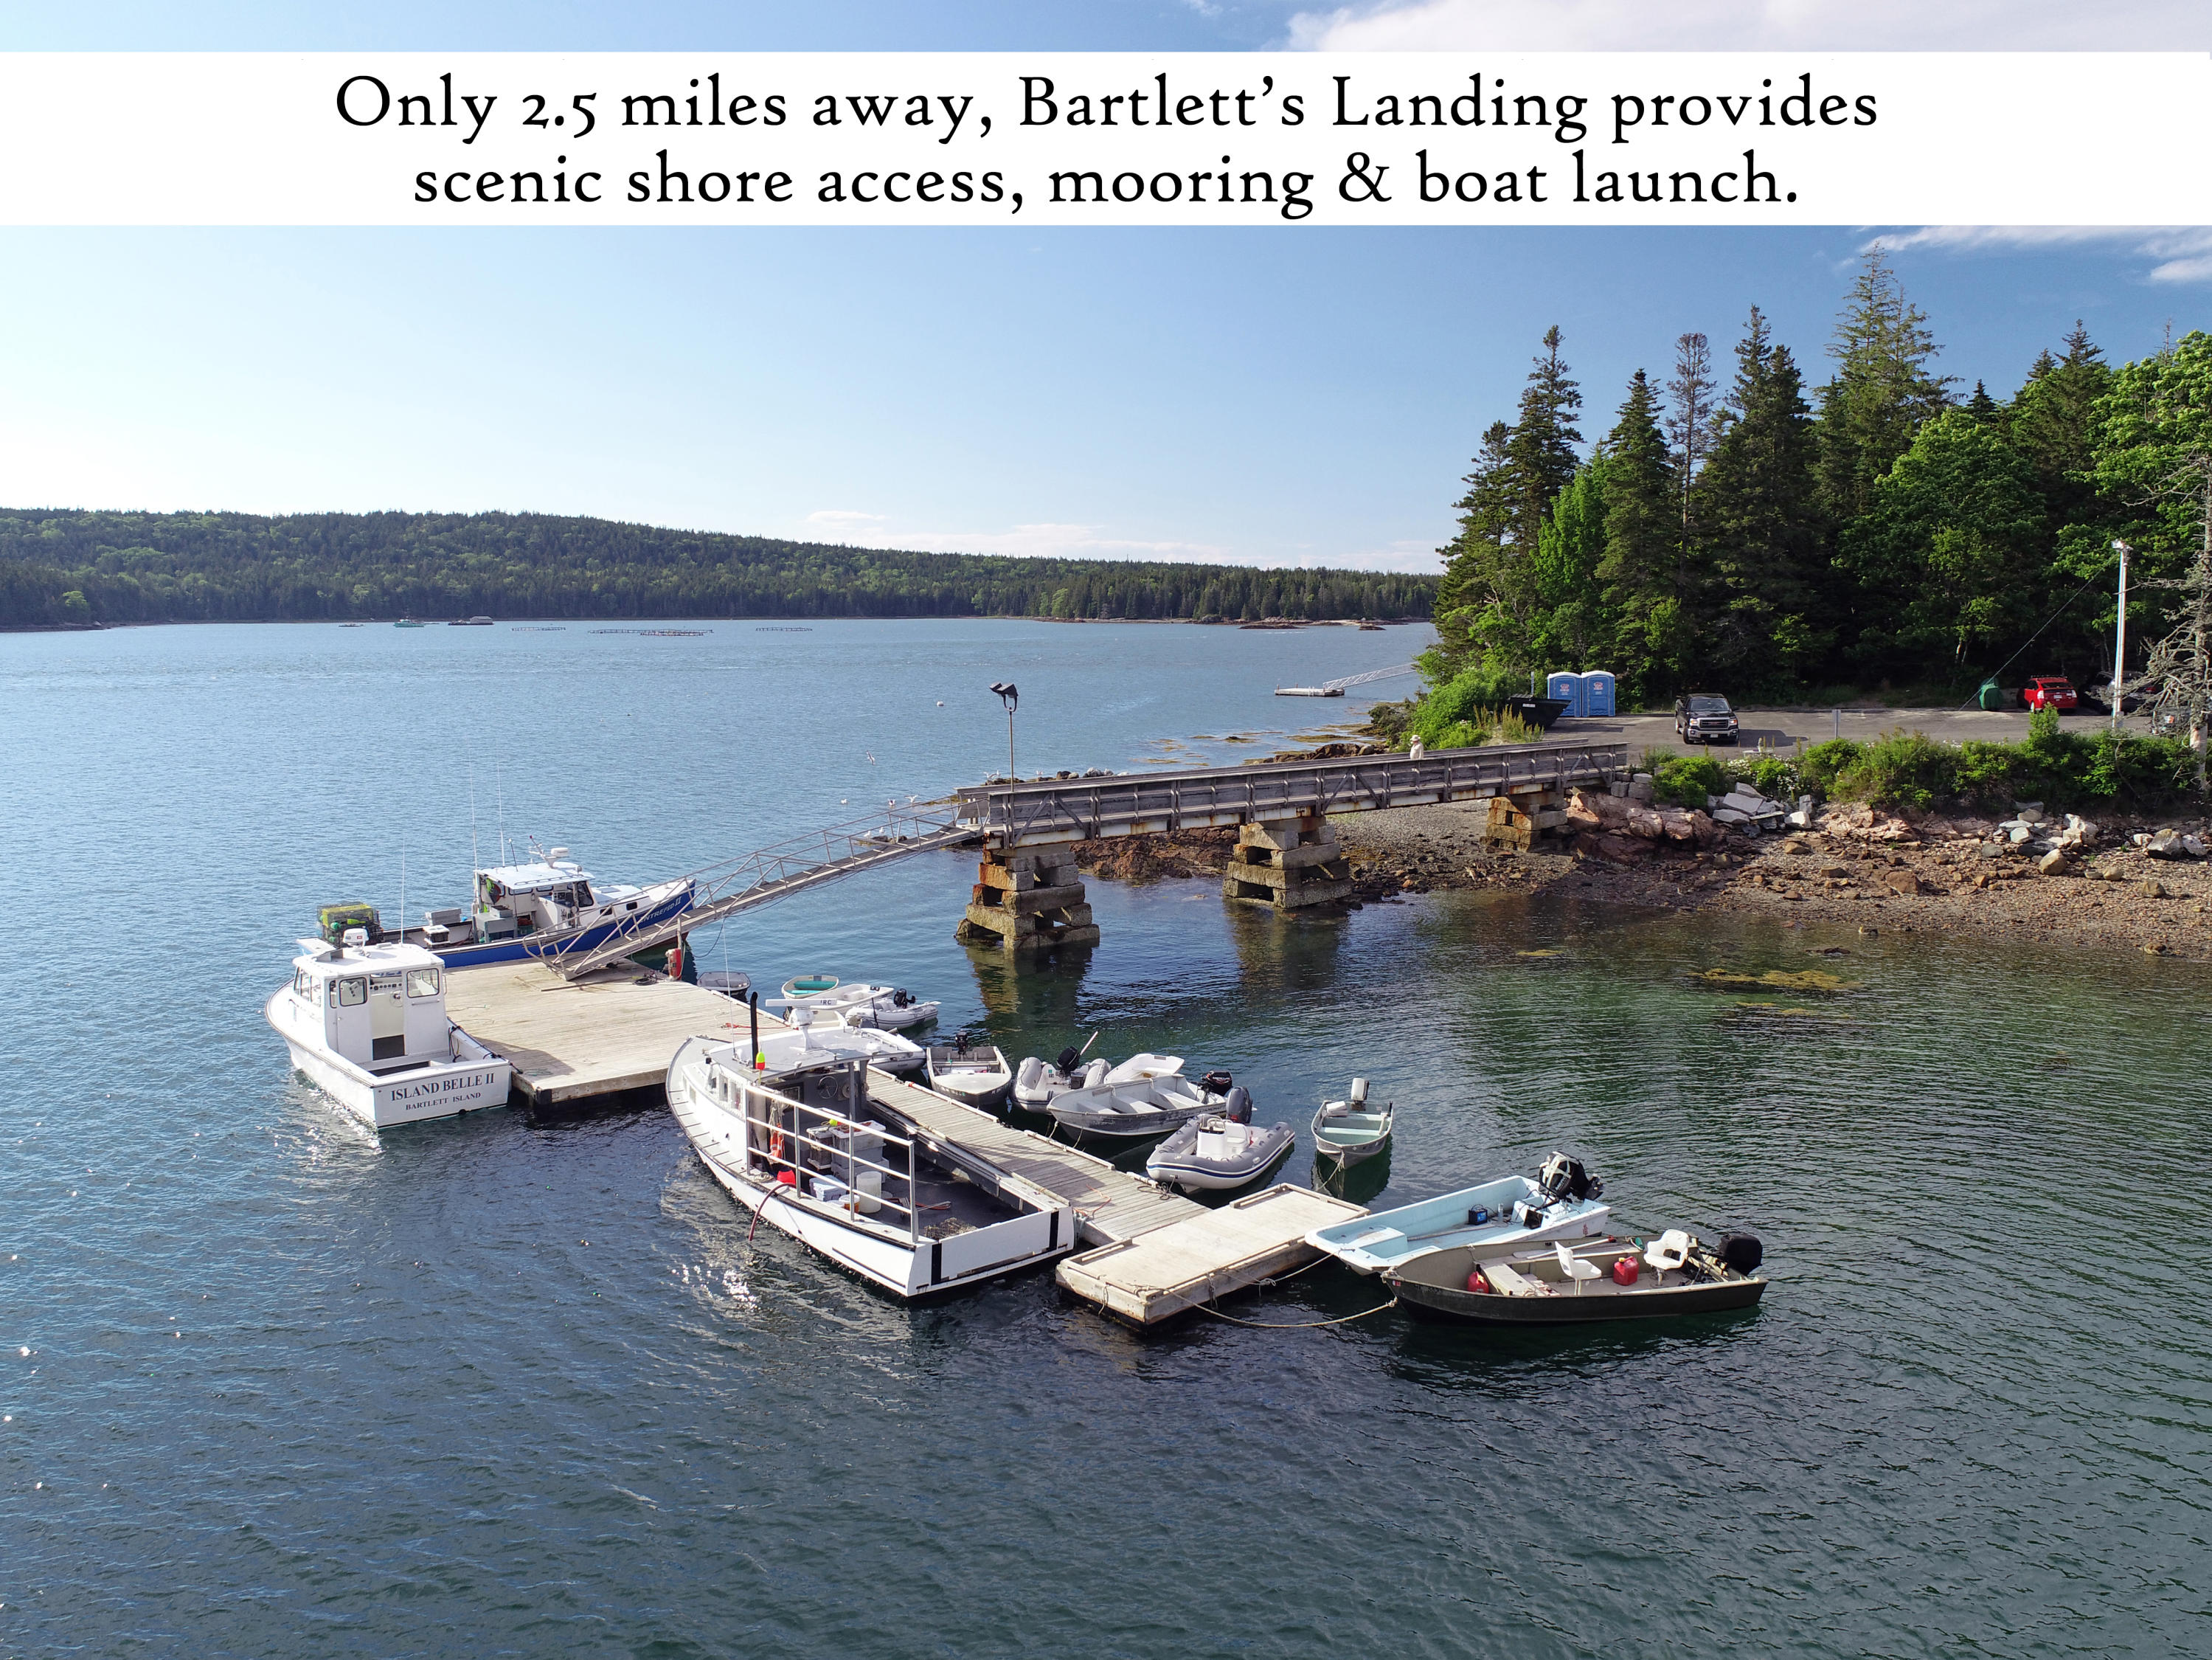 Bartlett's Landing 3, label